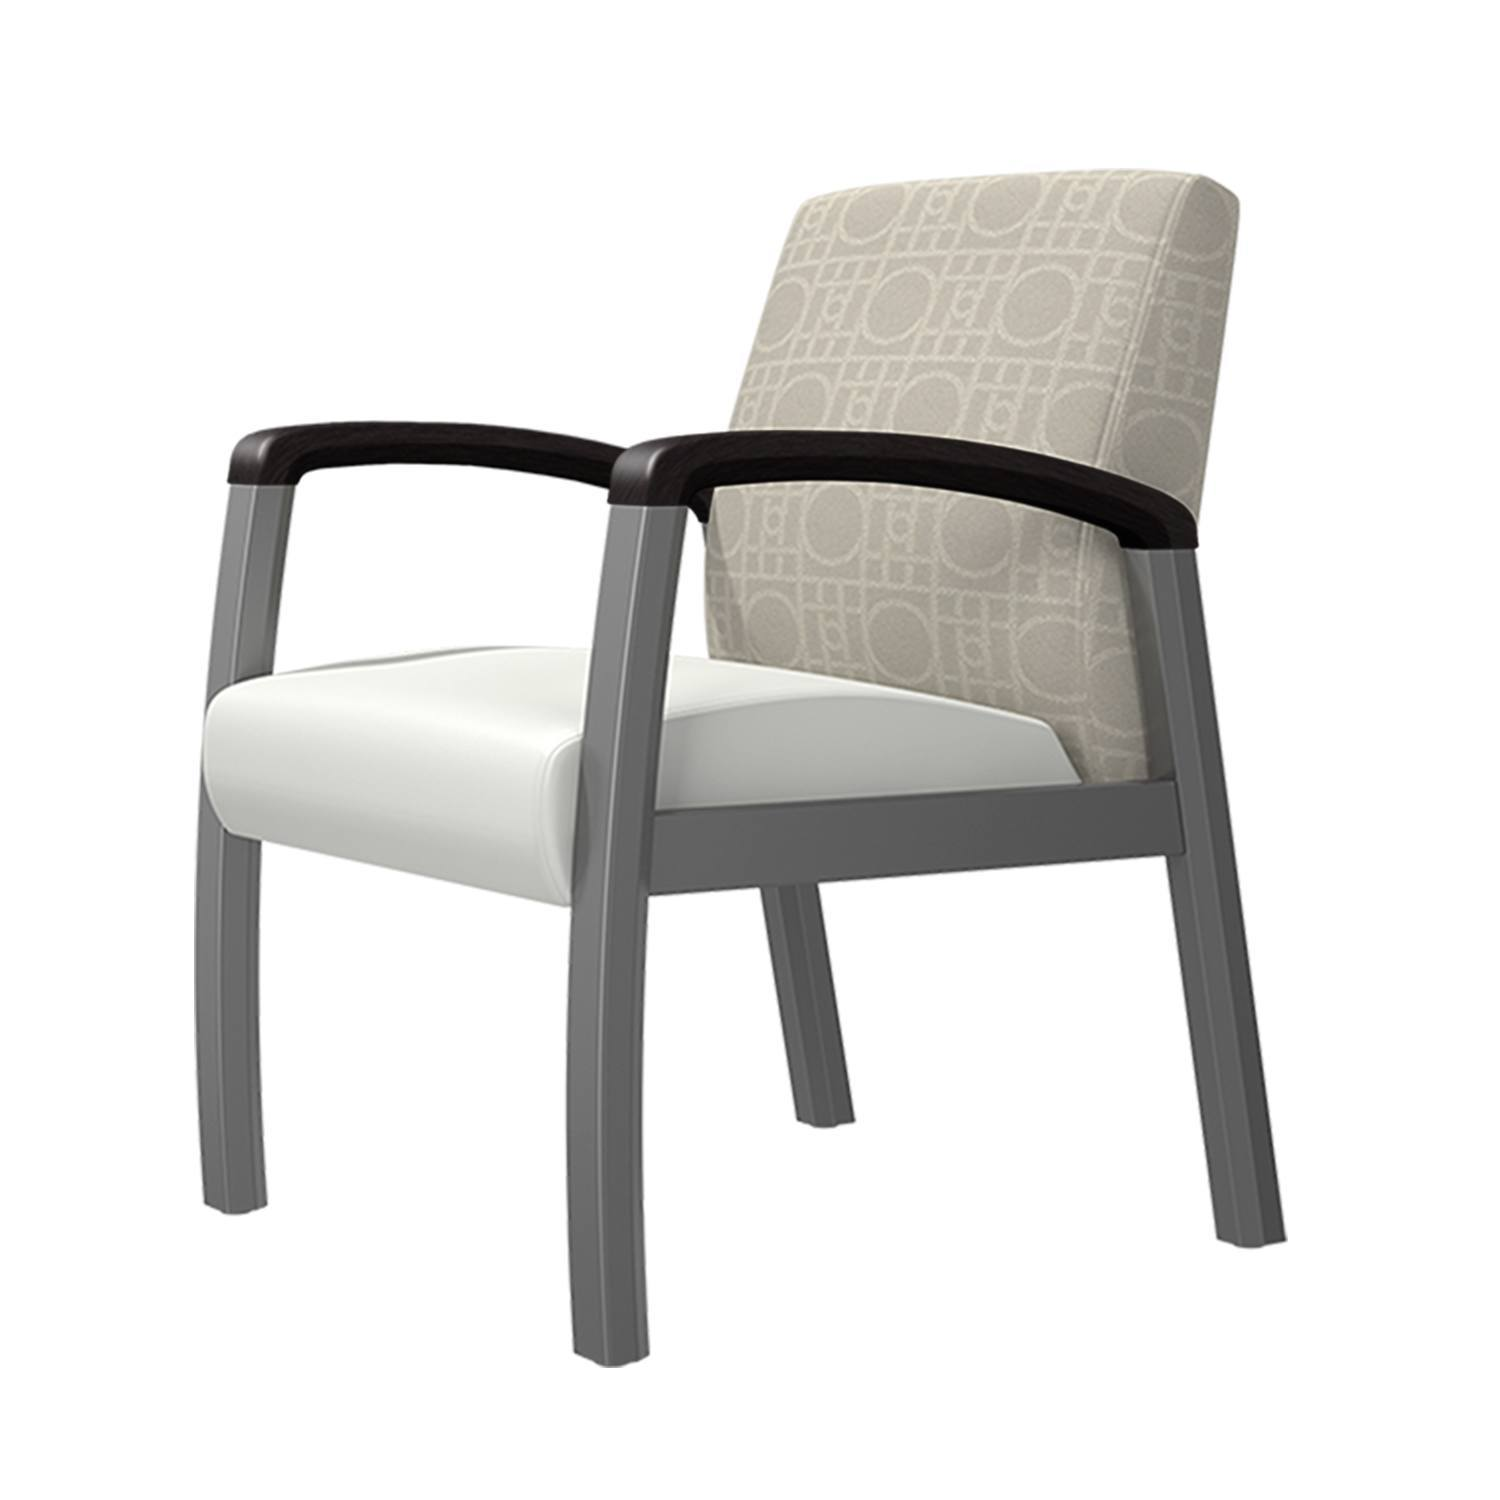 Ideon Aviera Metal Guest Chair